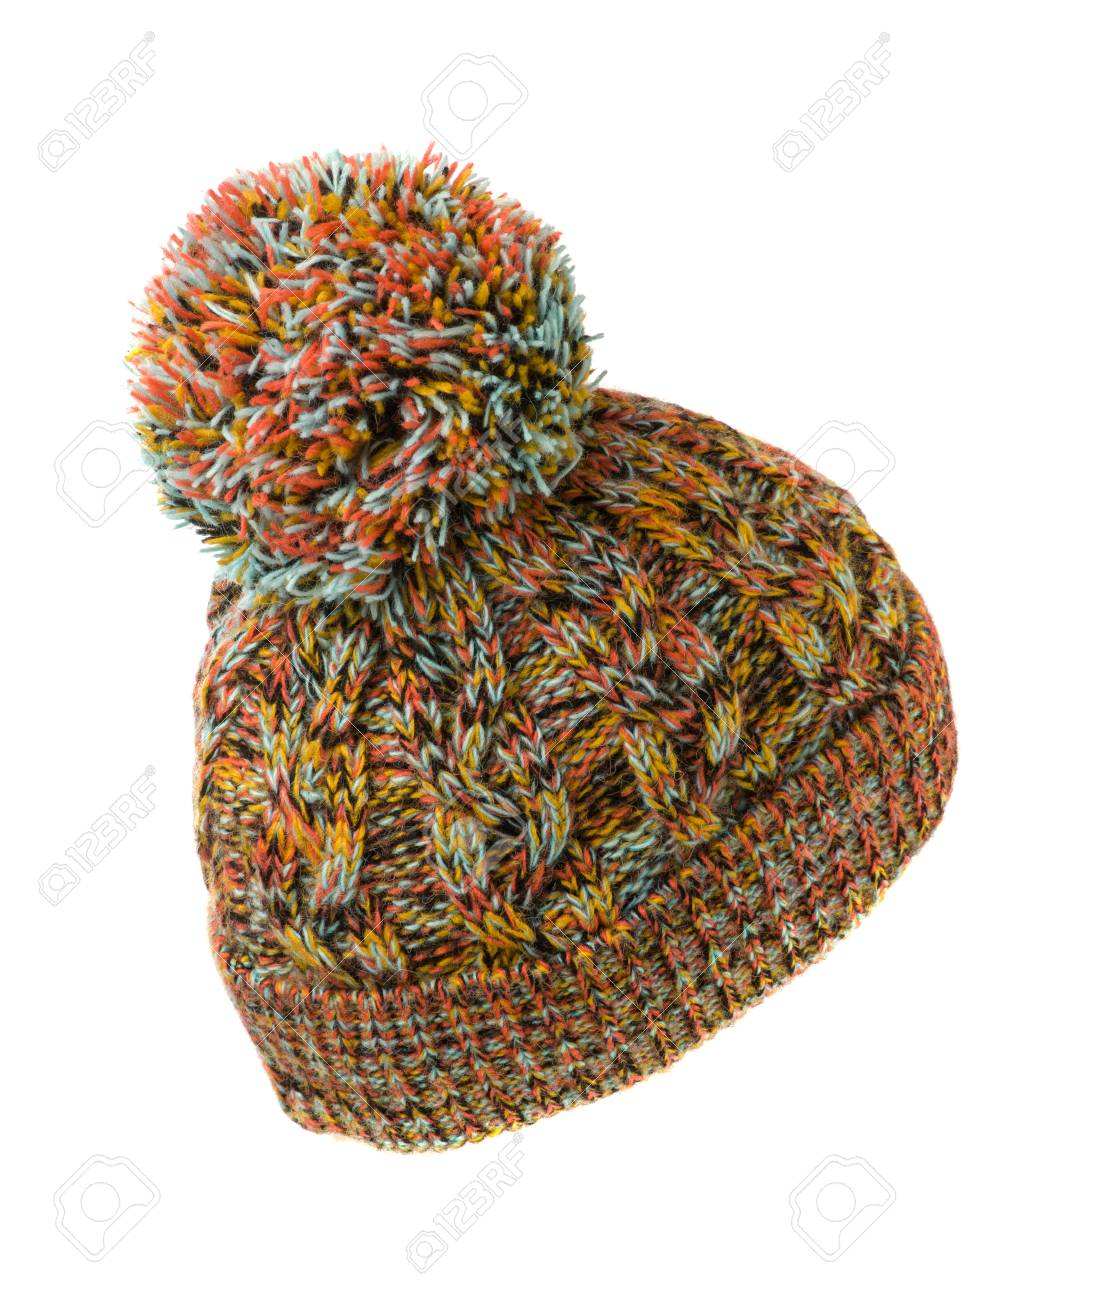 235c535b4 colorful knitted hat with pompom isolated on white background..